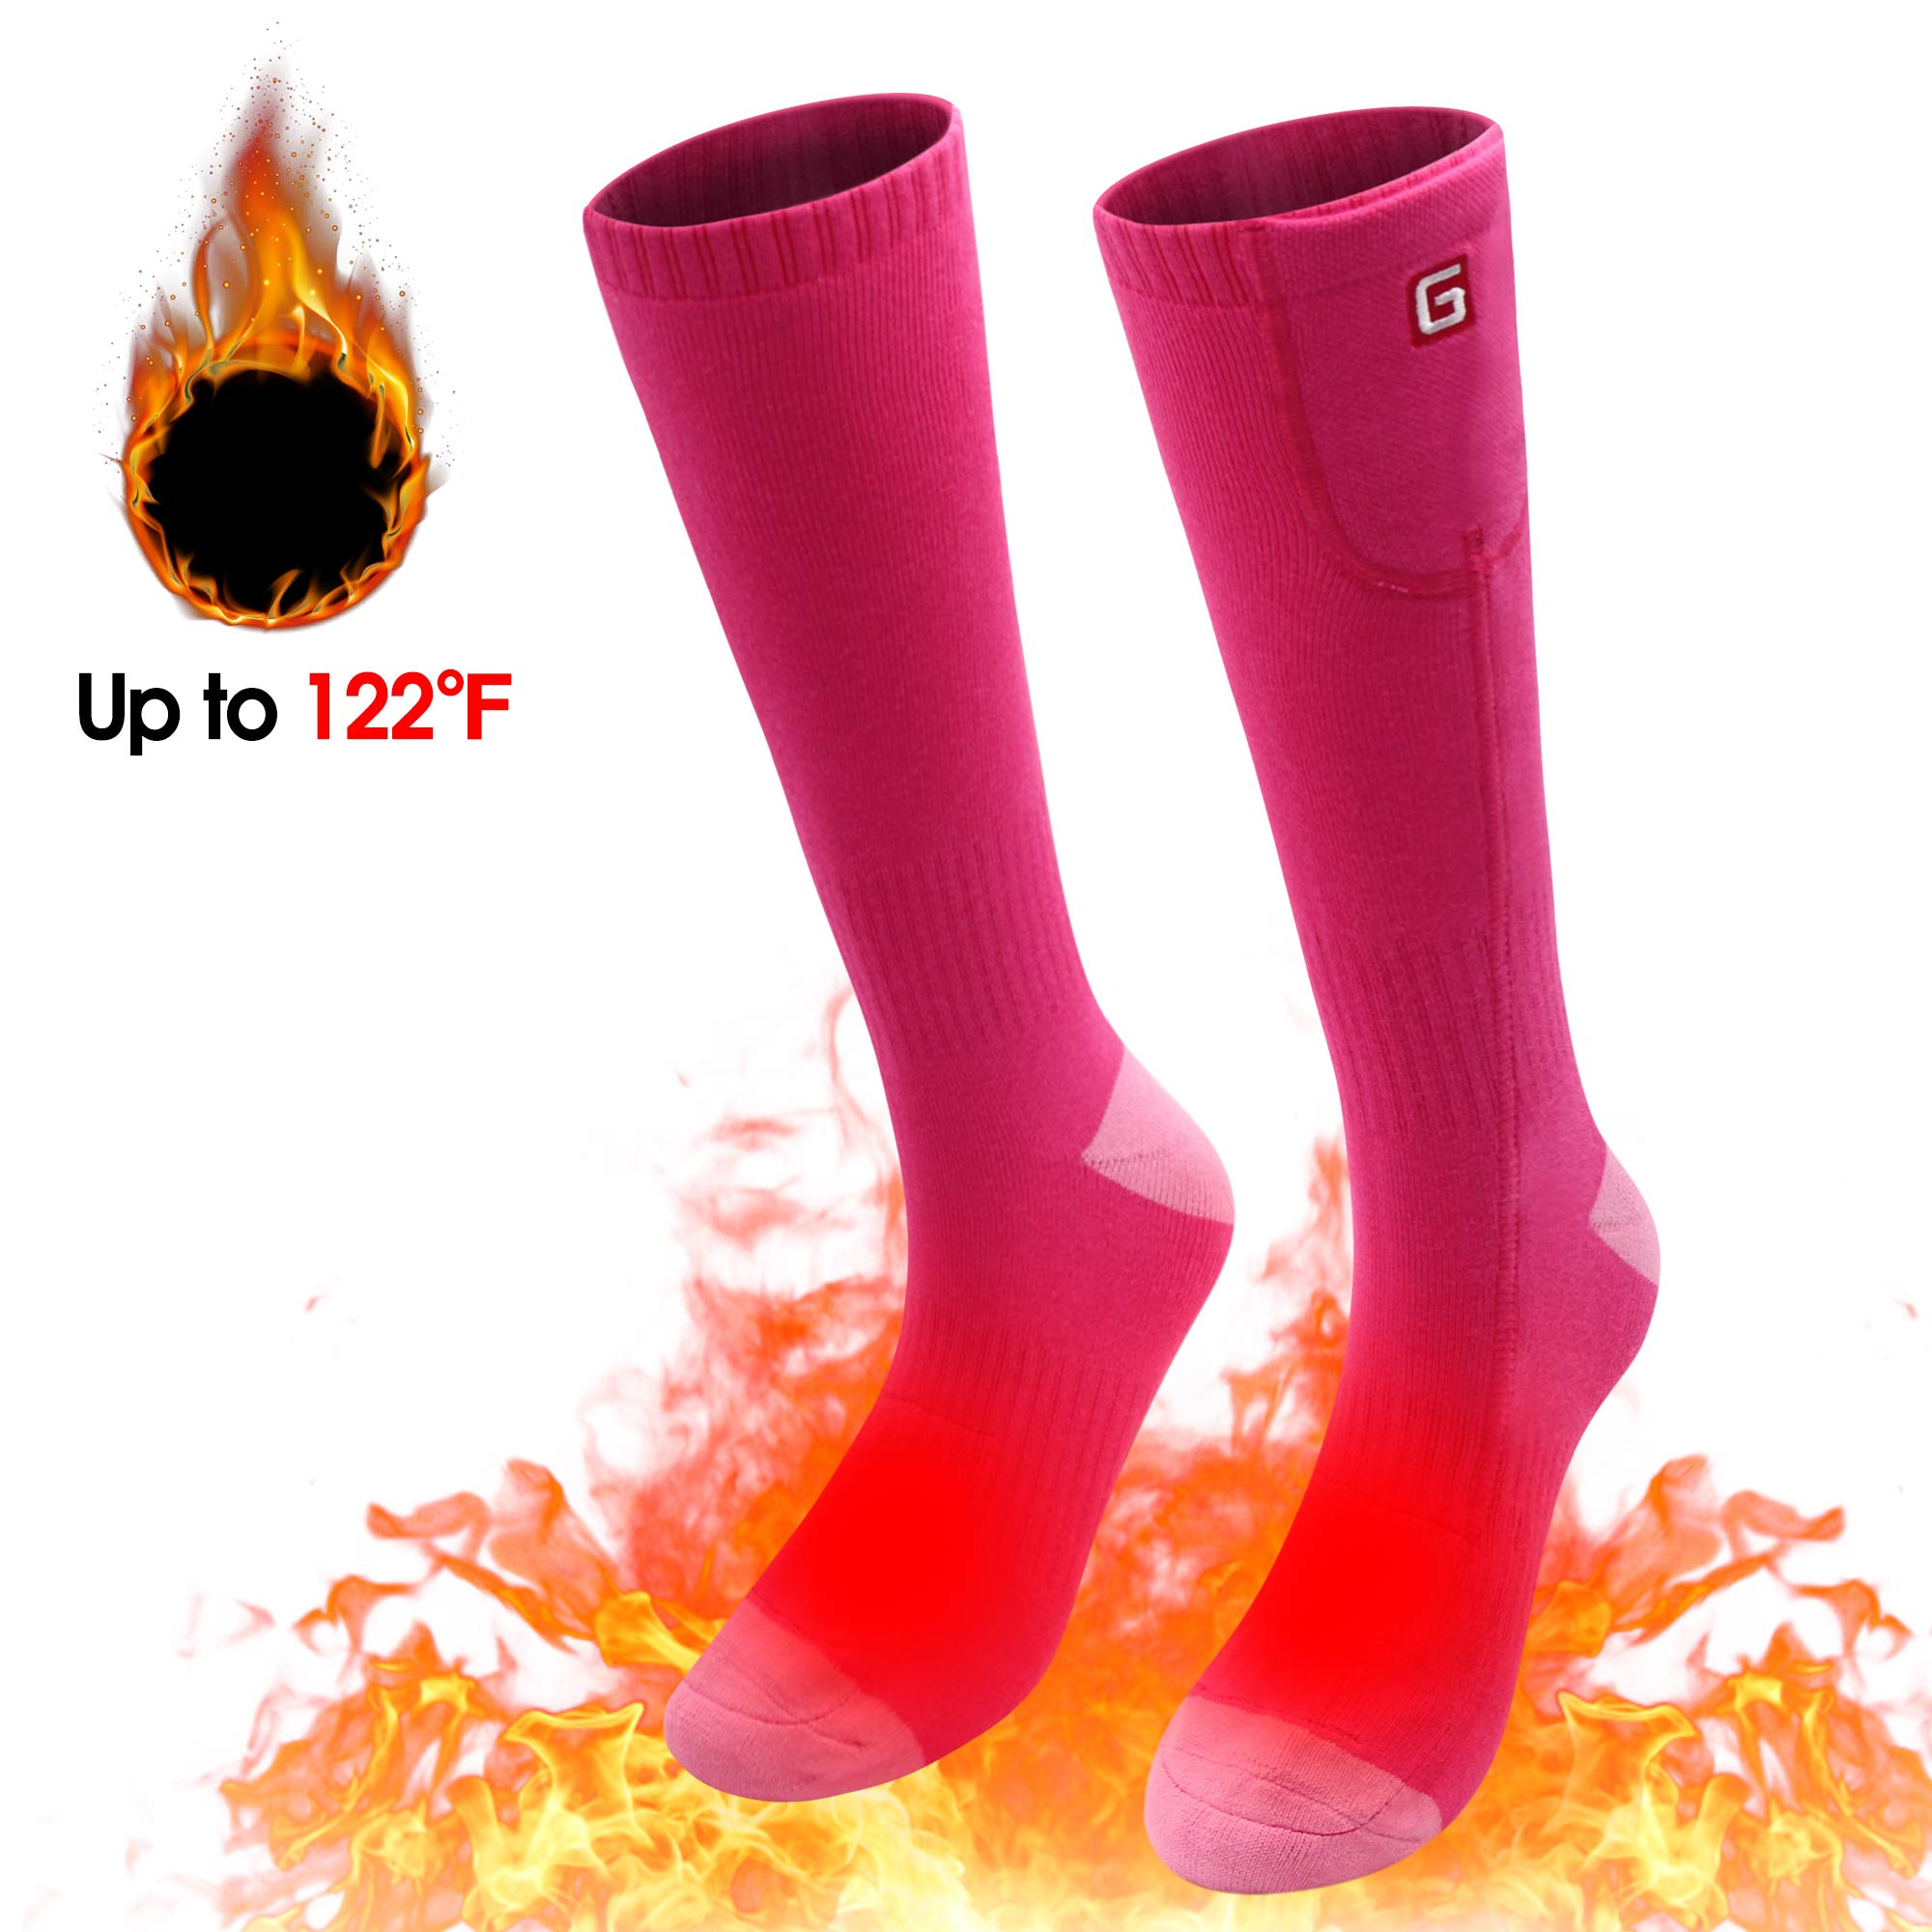 Spring Electric Rechargeable Battery Heating Socks for Men Women,Winter Ski Hunting Camping Hiking Climbing Riding Motorcycle Warm Feet Warmers and Waterpoof Socks (Pink) by SPRING SHOP